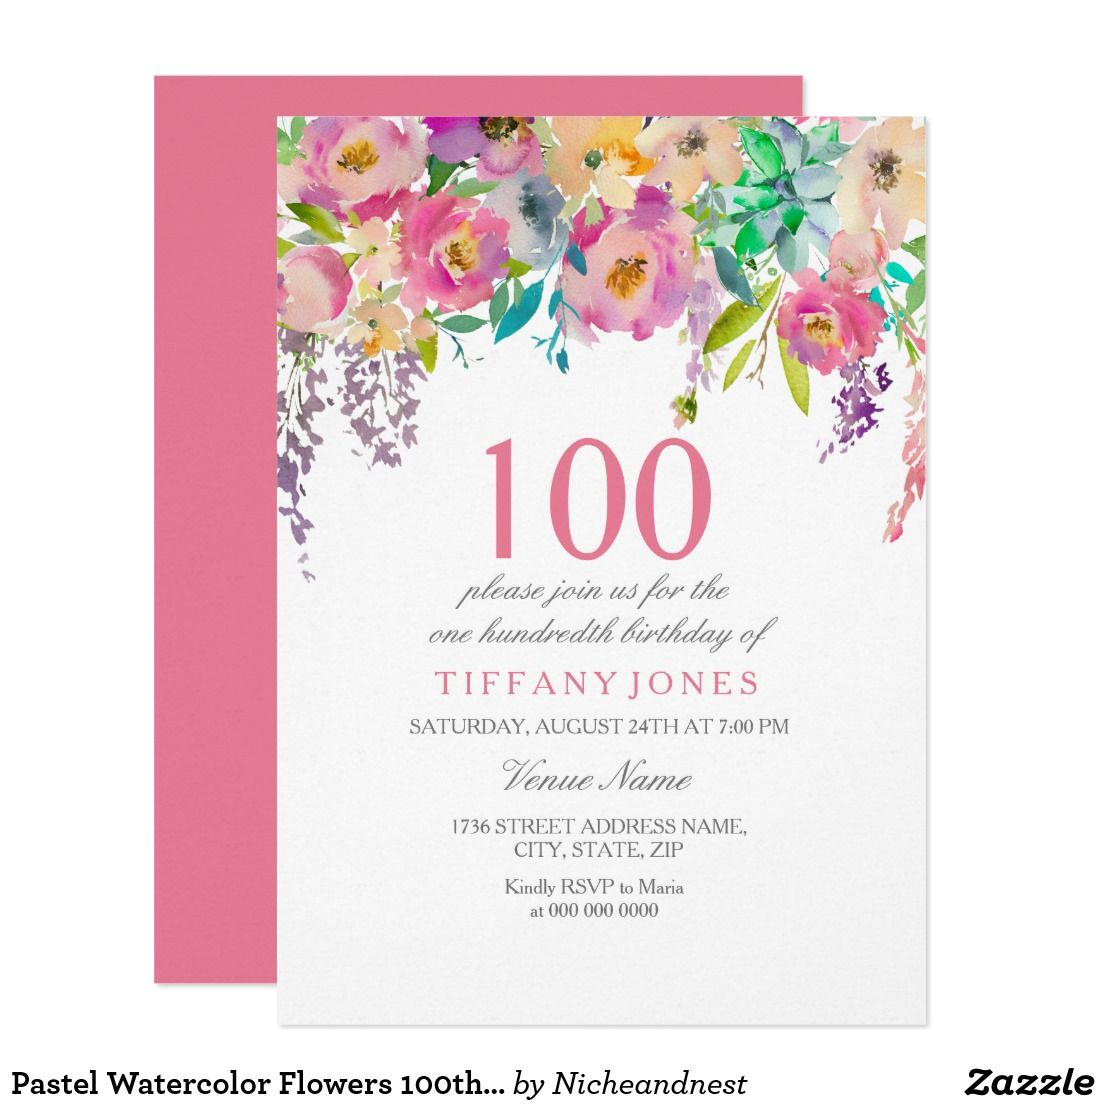 Pastel Watercolor Flowers 100th Birthday Party Card Invitations